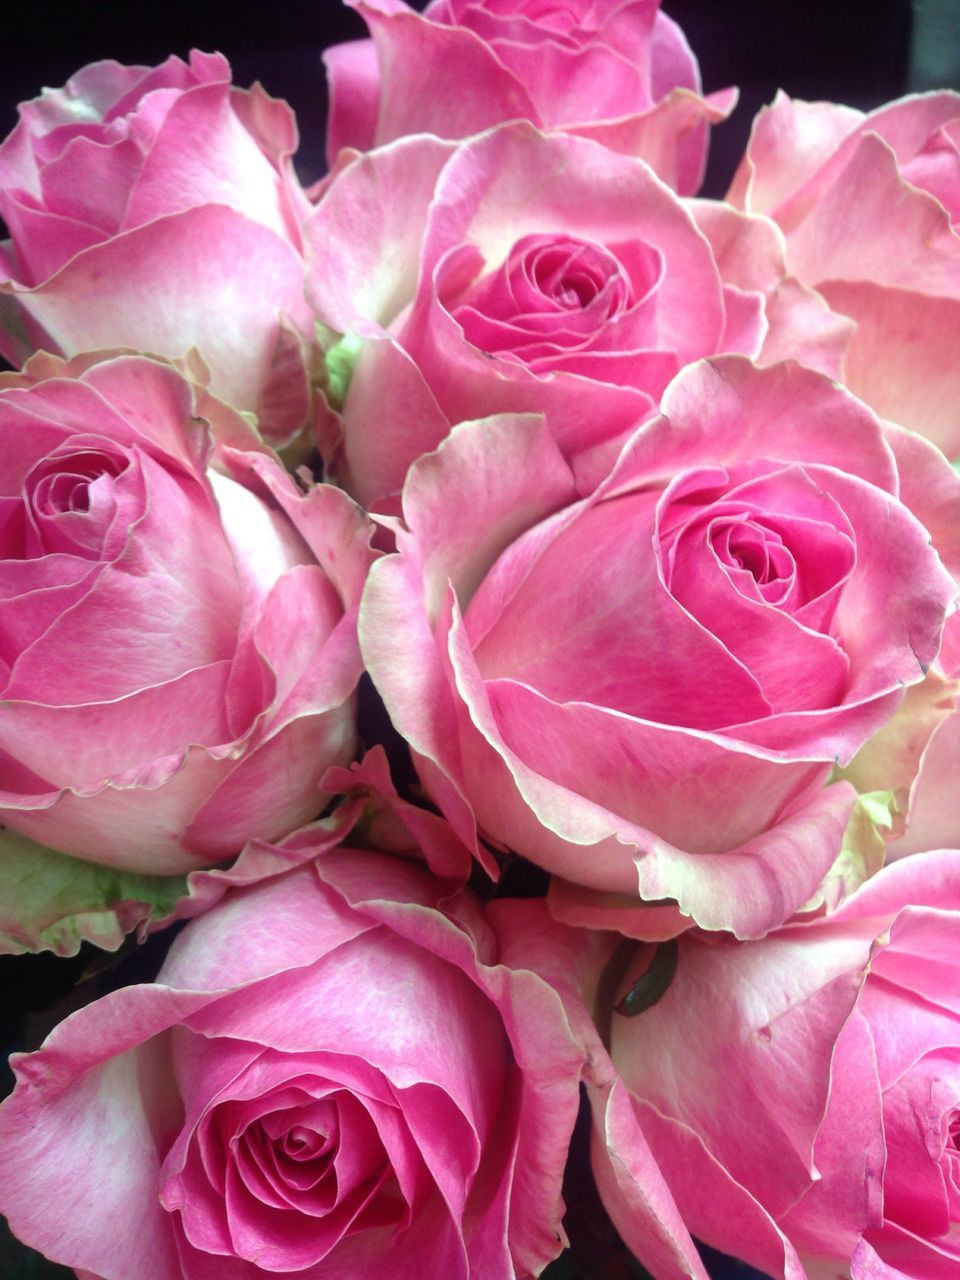 flower, rose - flower, pink color, petal, flower head, beauty in nature, fragility, nature, no people, freshness, close-up, plant, outdoors, day, bouquet